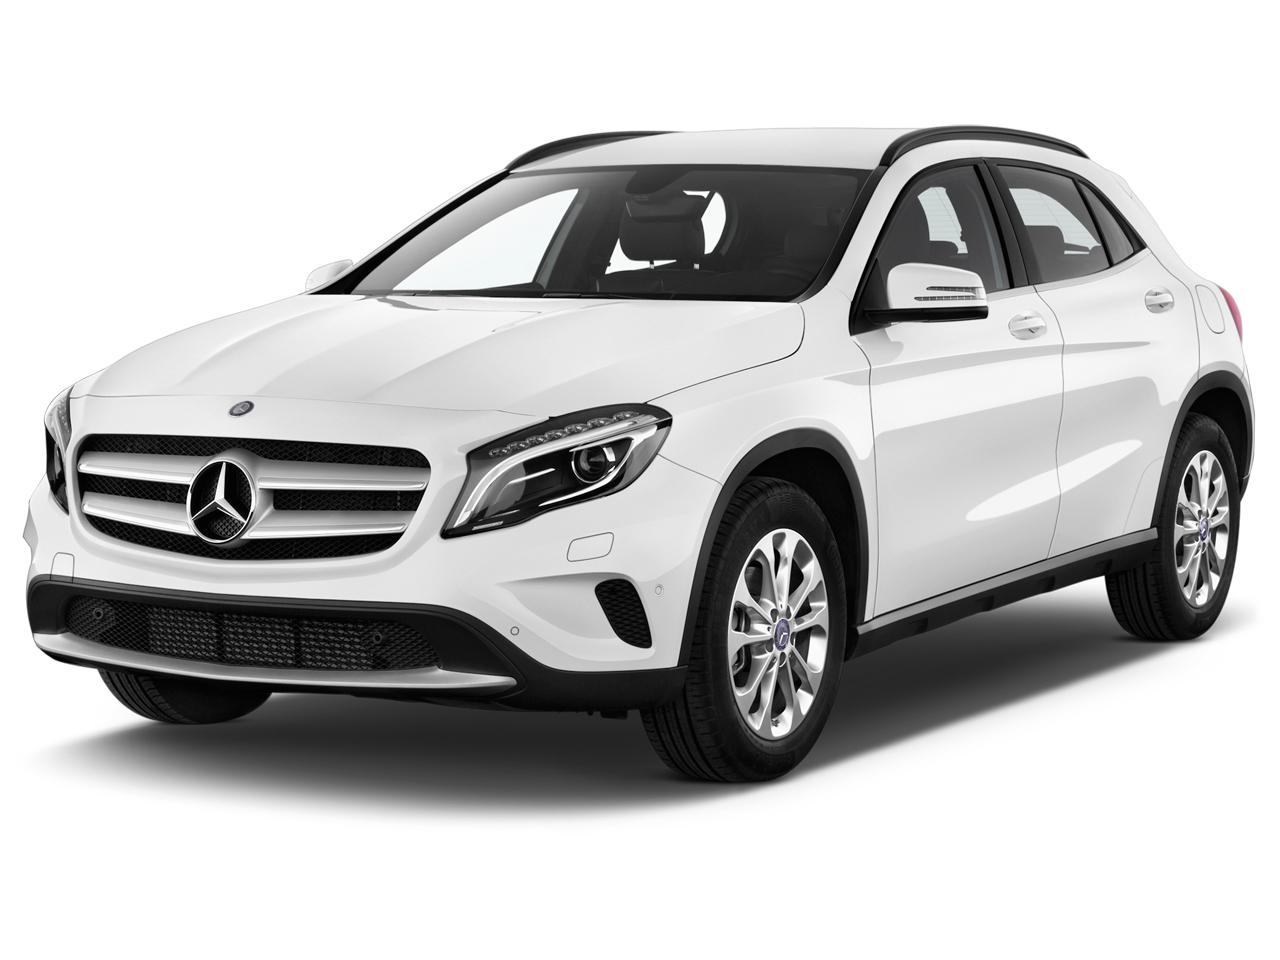 2015 mercedes benz gla class review ratings specs for Mercedes benz gla class price